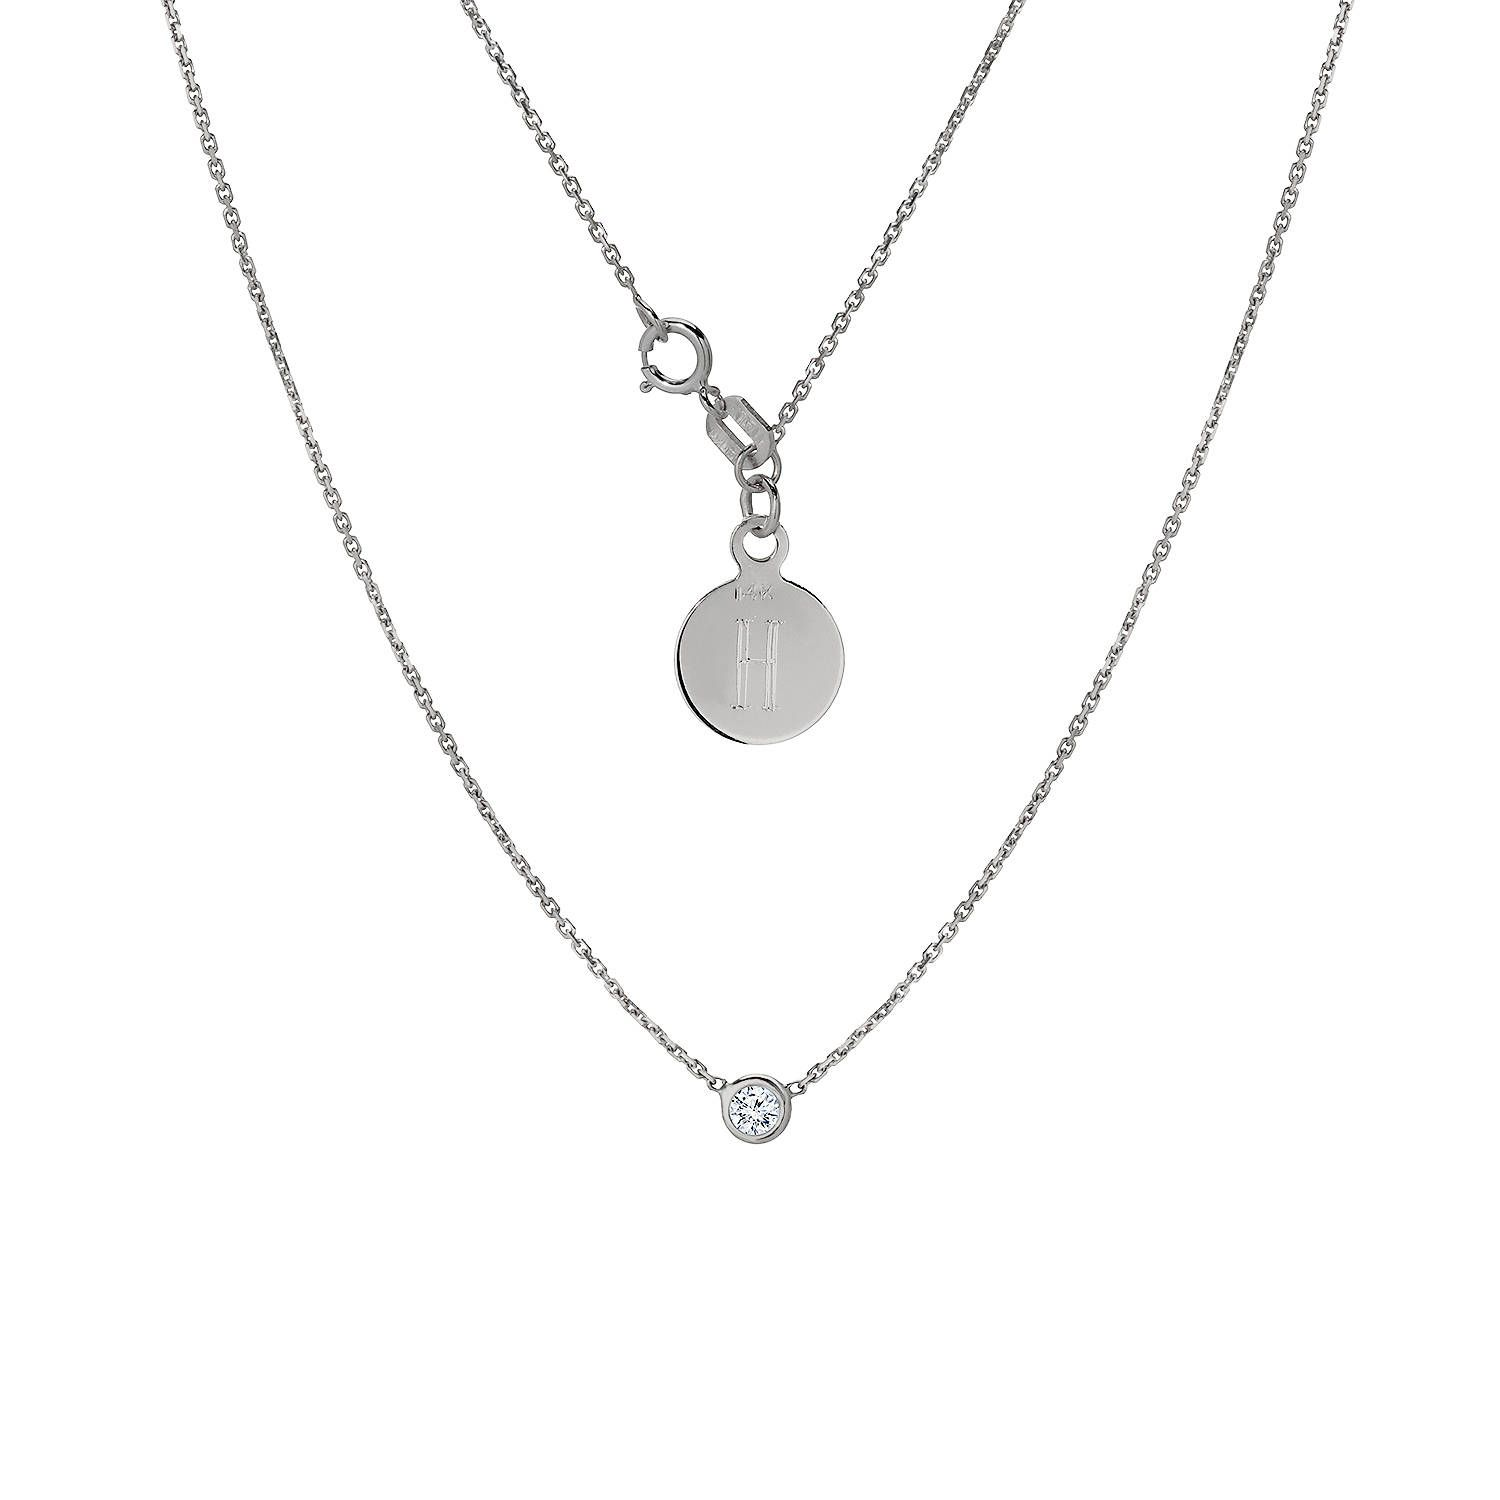 Tousi Jewelers Diamond Necklace Solitaire Pendant- Solid 14k White Gold - Bezel Set Necklaces-Free Personalized Initials Engraving